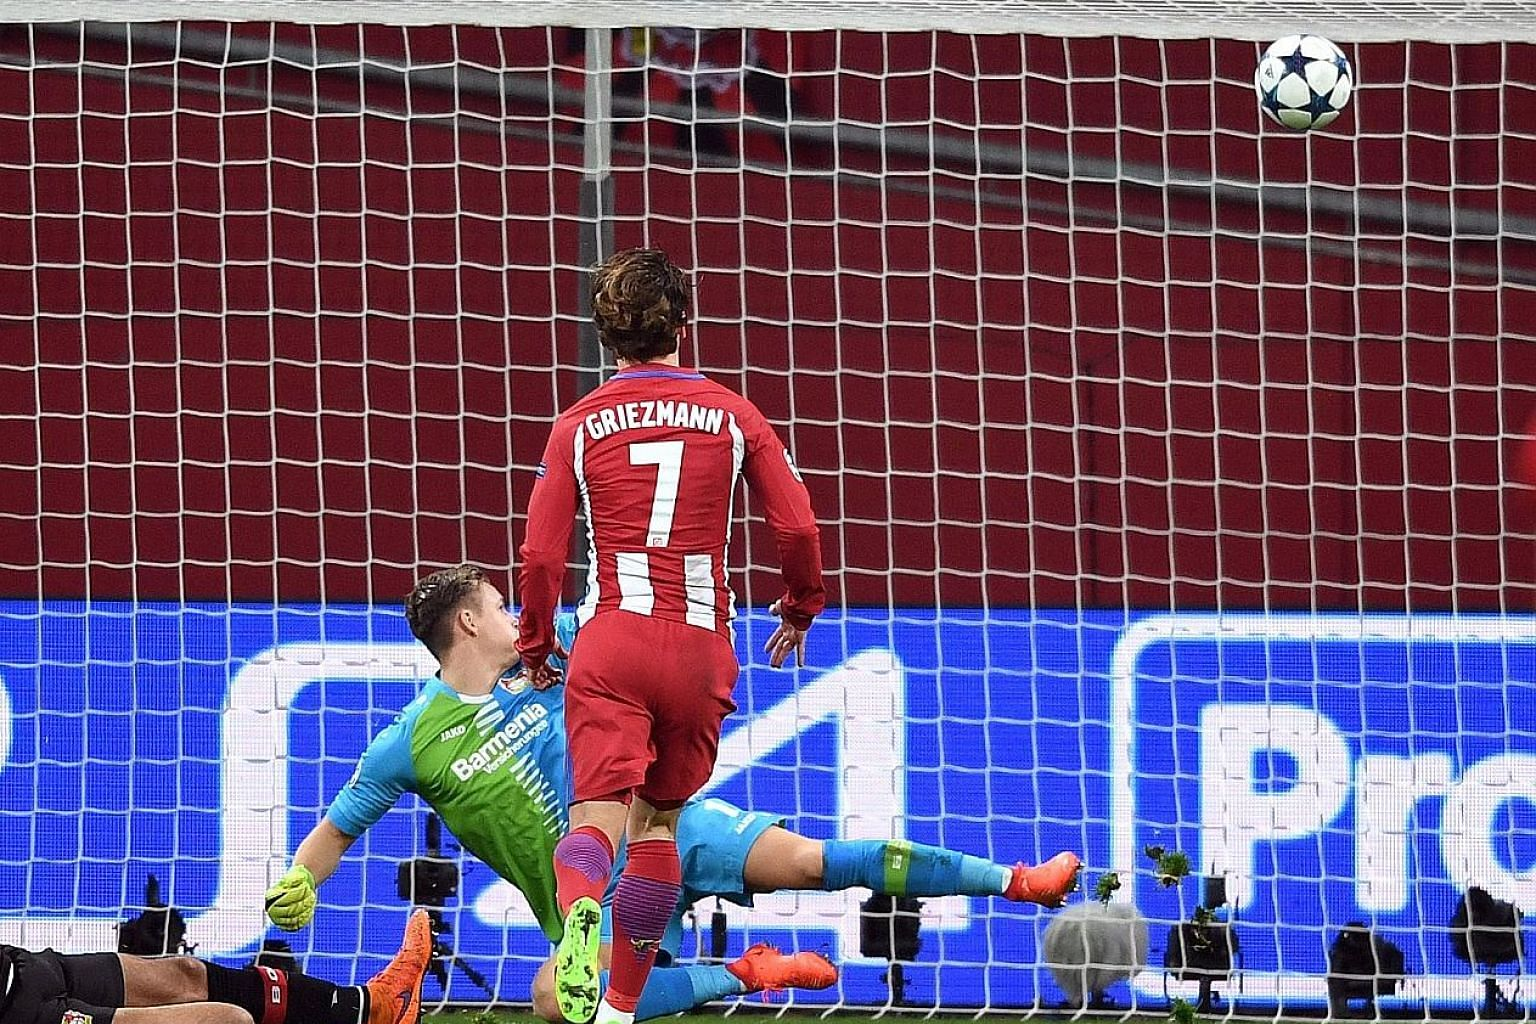 Antoine Griezmann watching his shot hit the back of the net via the crossbar to put Atletico two goals up in their 4-2 defeat of Bayer Leverkusen, as the beaten Bernd Leno can only watch on helplessly.